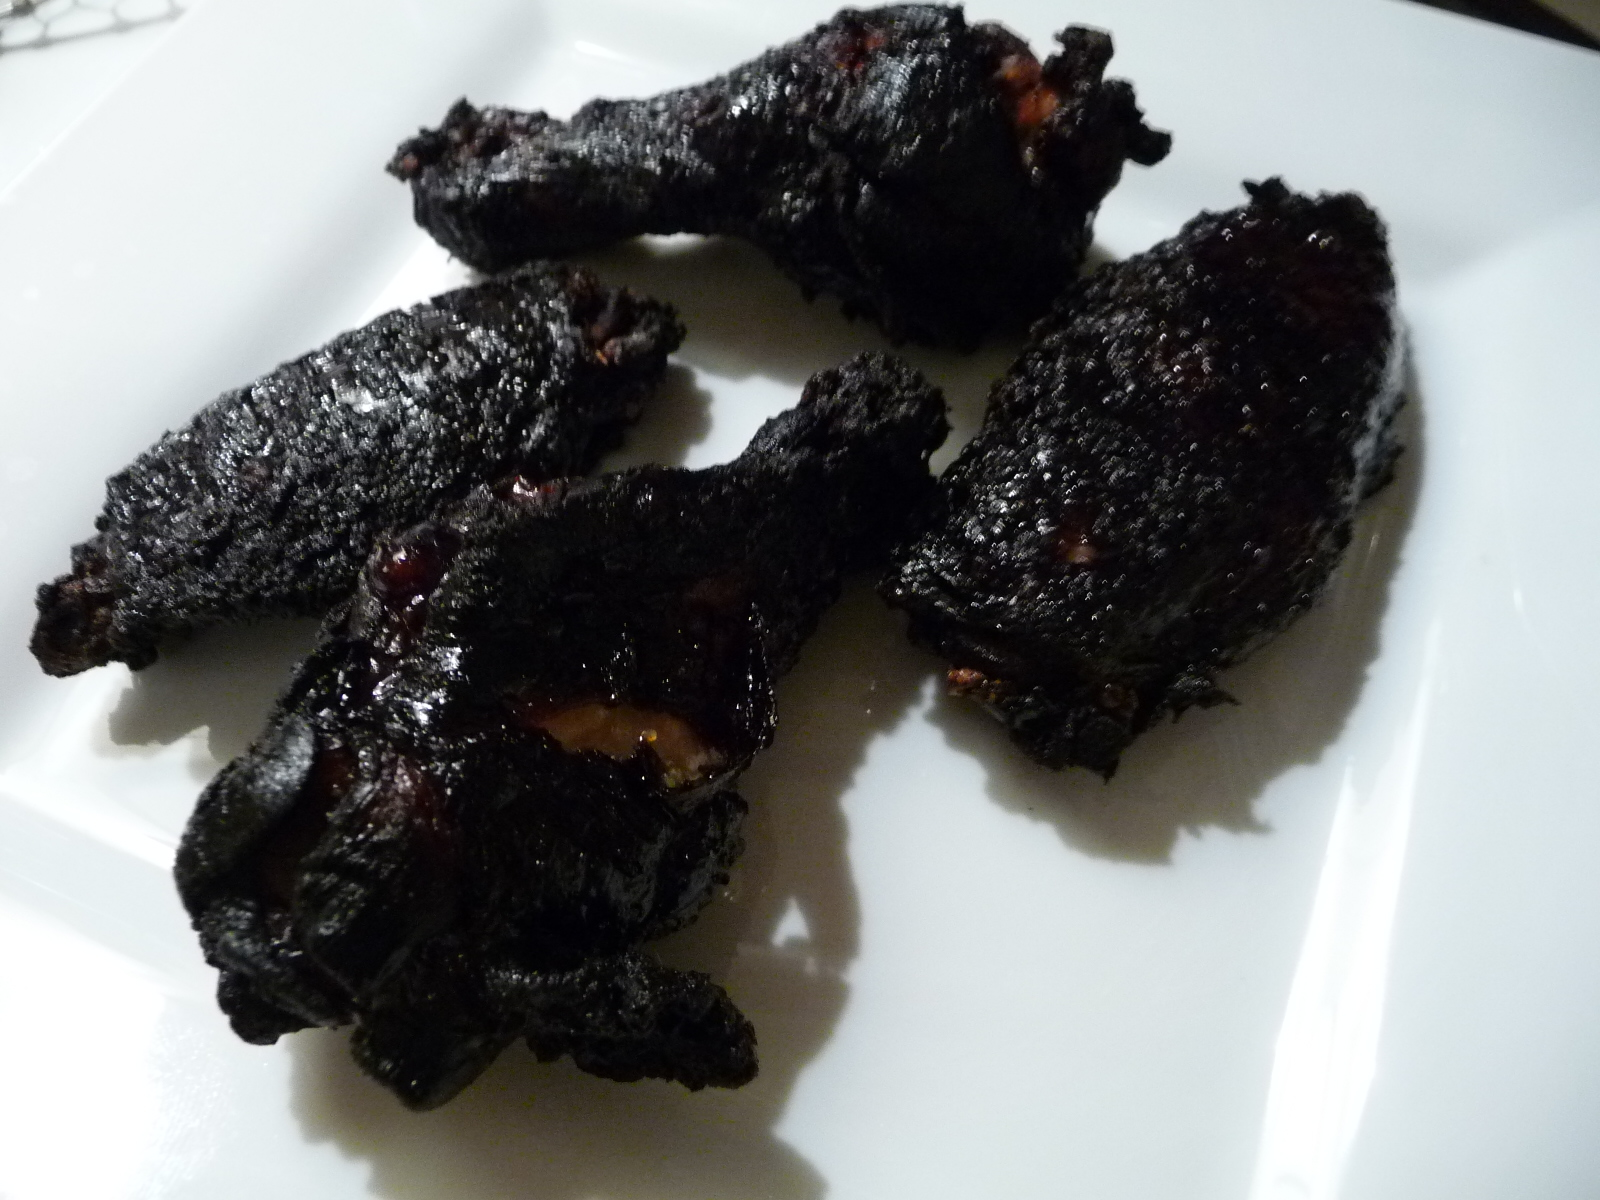 Coal black wings fried crispy with no sauce